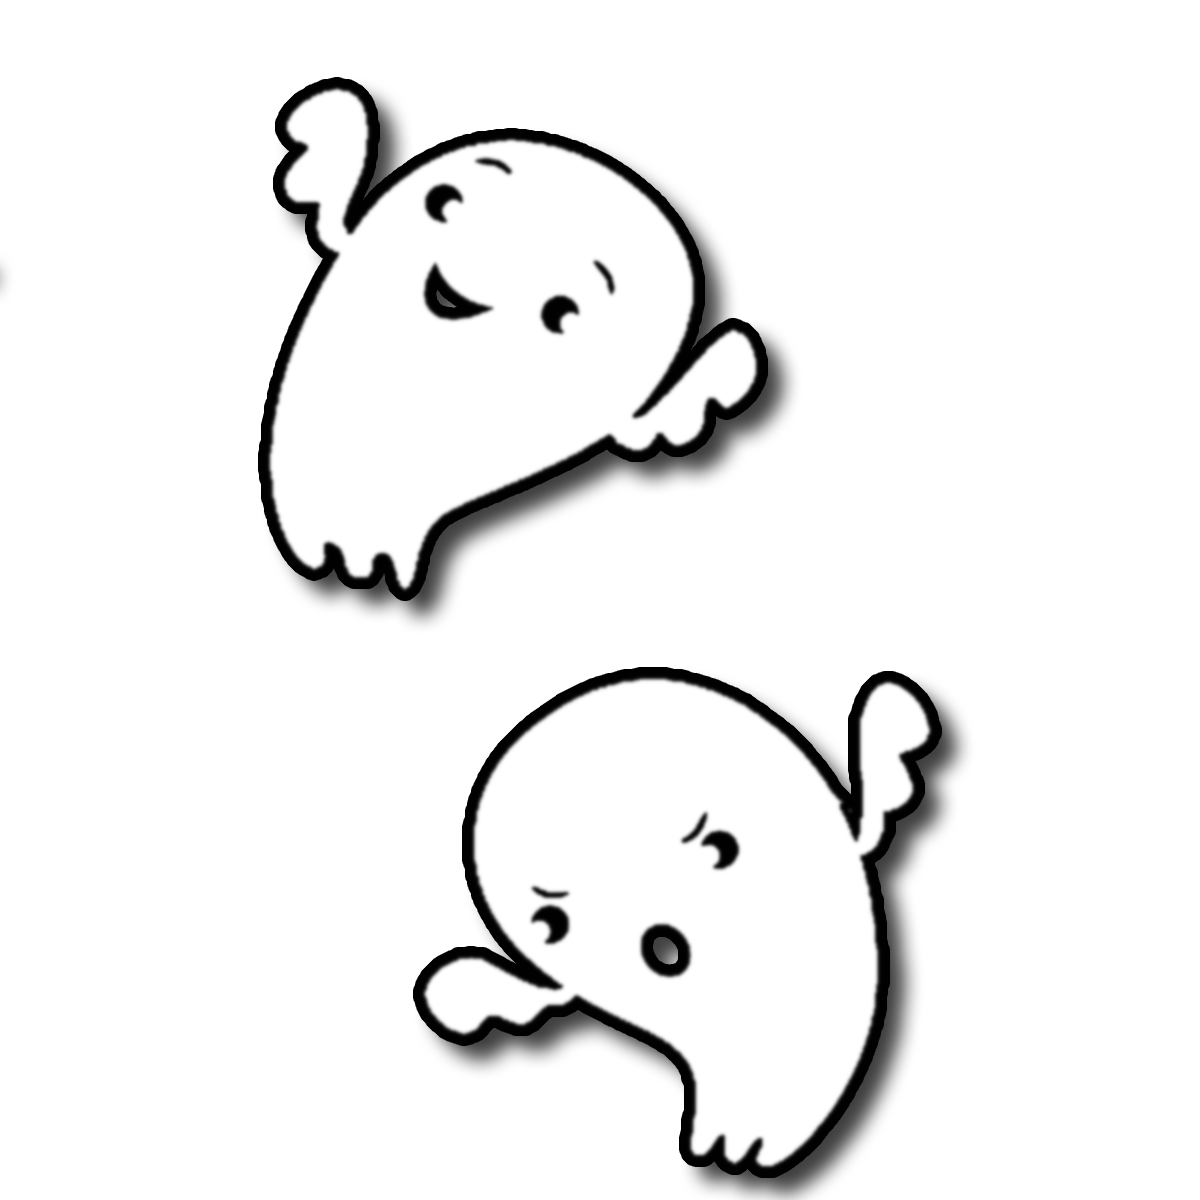 Flying ghost clipart black and white transparent image library download Free Baby Ghost Cliparts, Download Free Clip Art, Free Clip Art on ... image library download